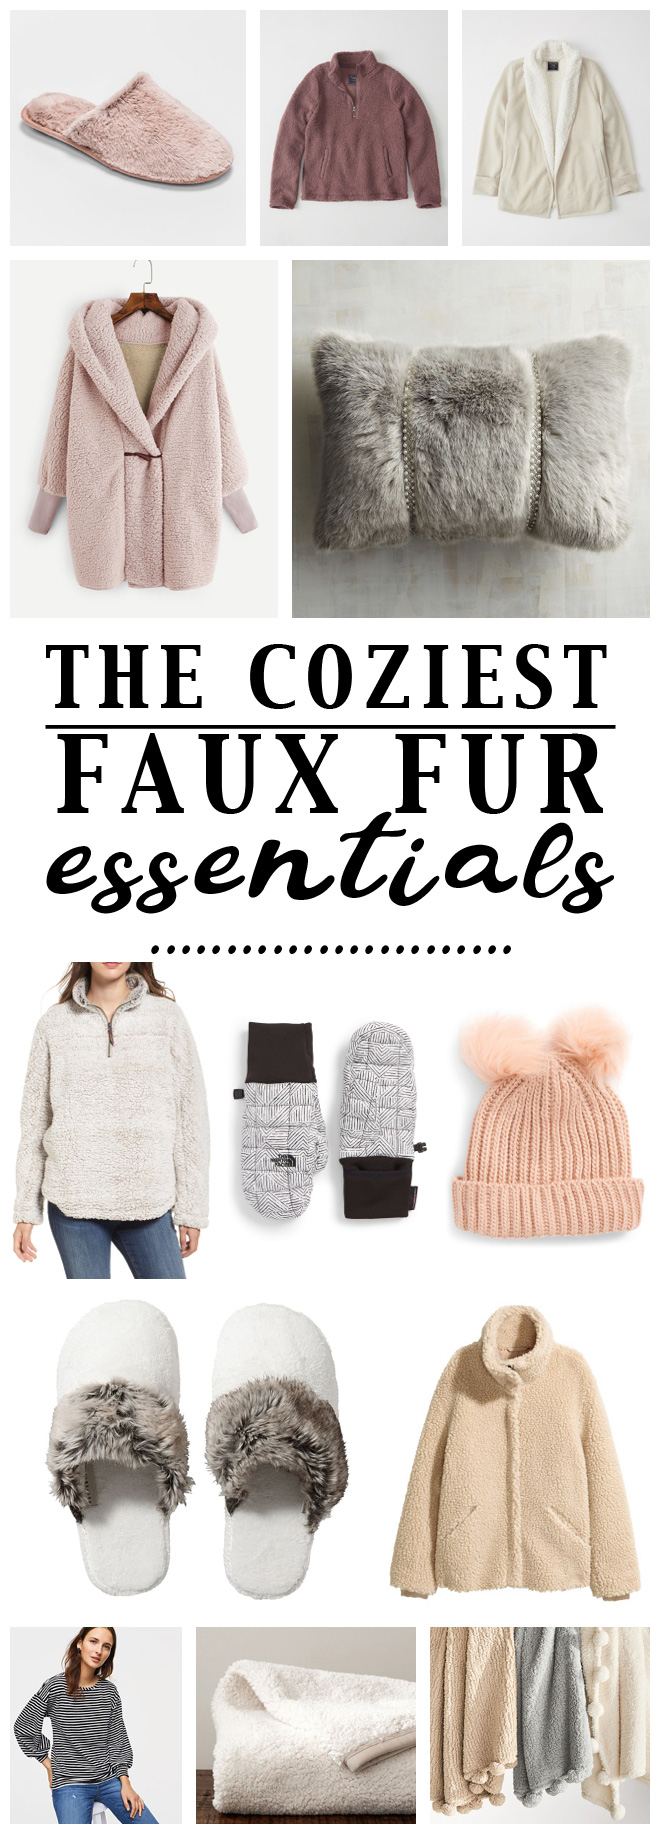 I need all of this cozy fashion! Super cute sherpa, teddy bear fur, and pom pom clothing.